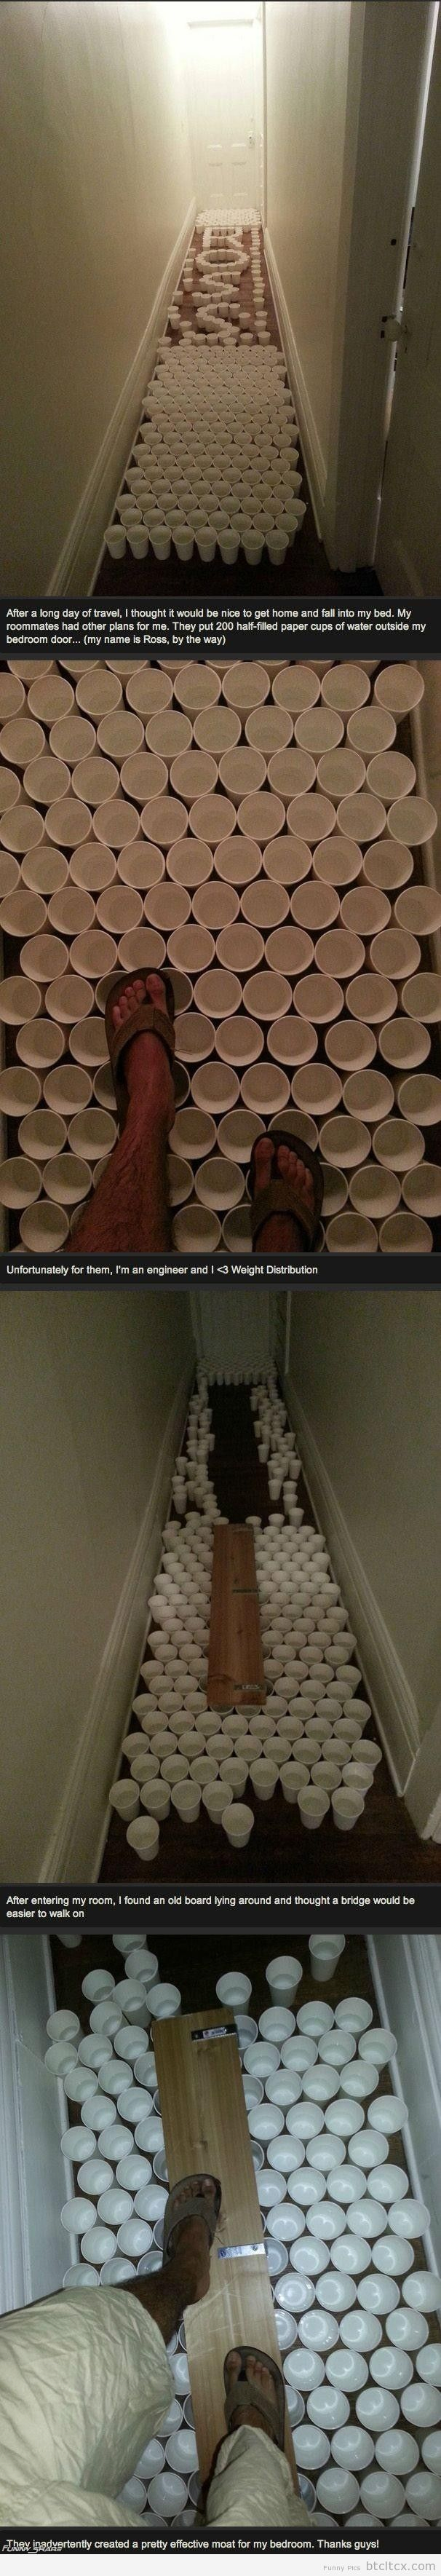 best images about biomedical engineering d out engineering the roomates funny pictures